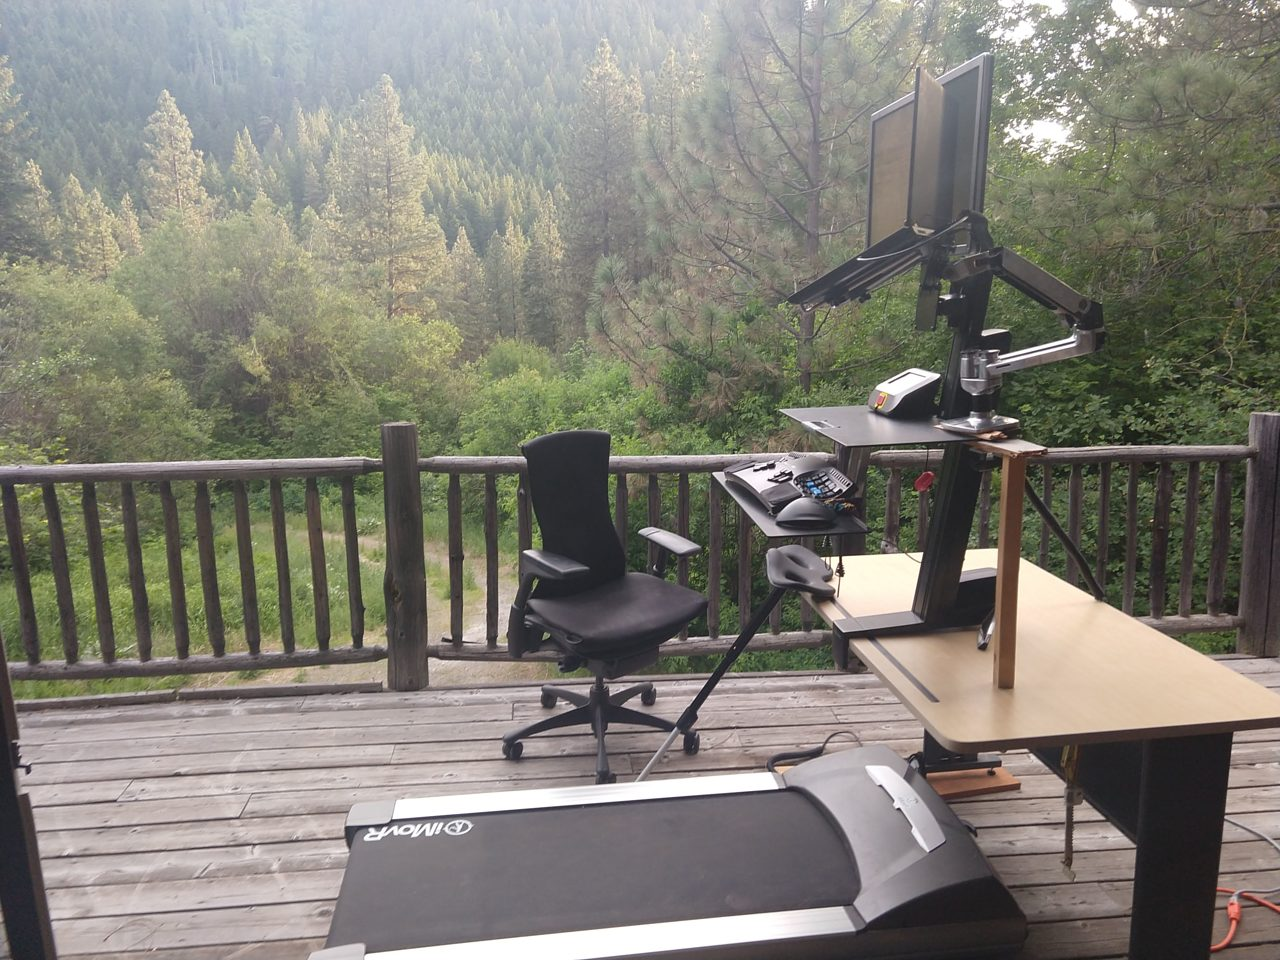 treadmill desk on deck with trees in the background